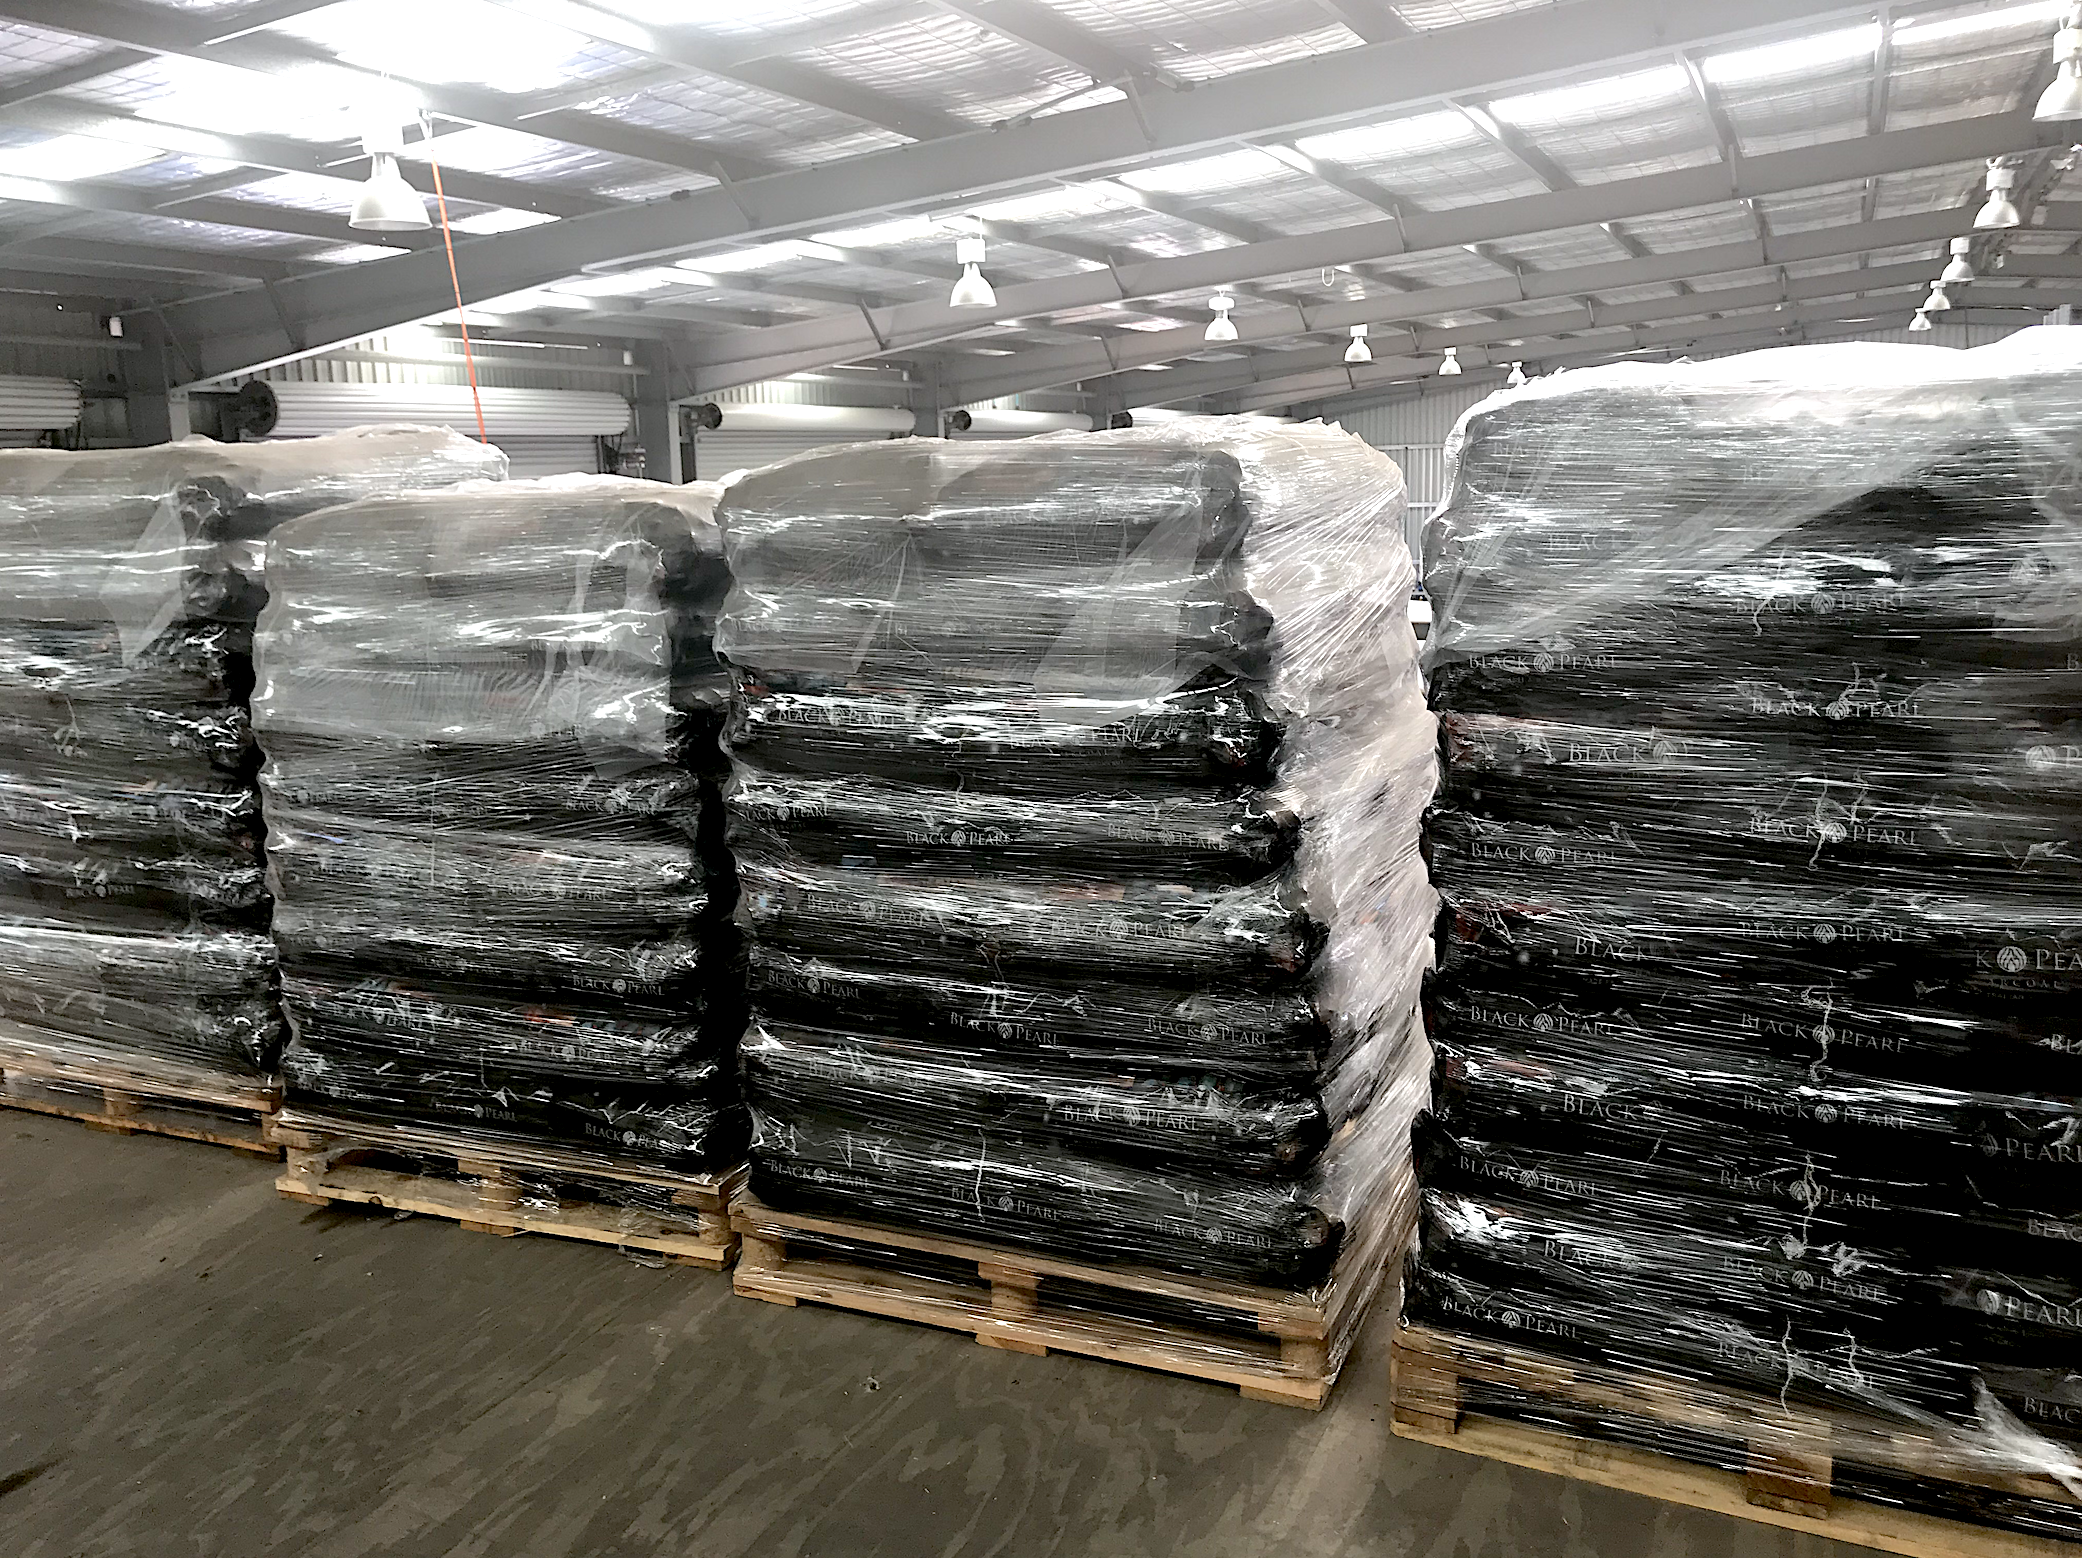 BPC pallets in the warehouse